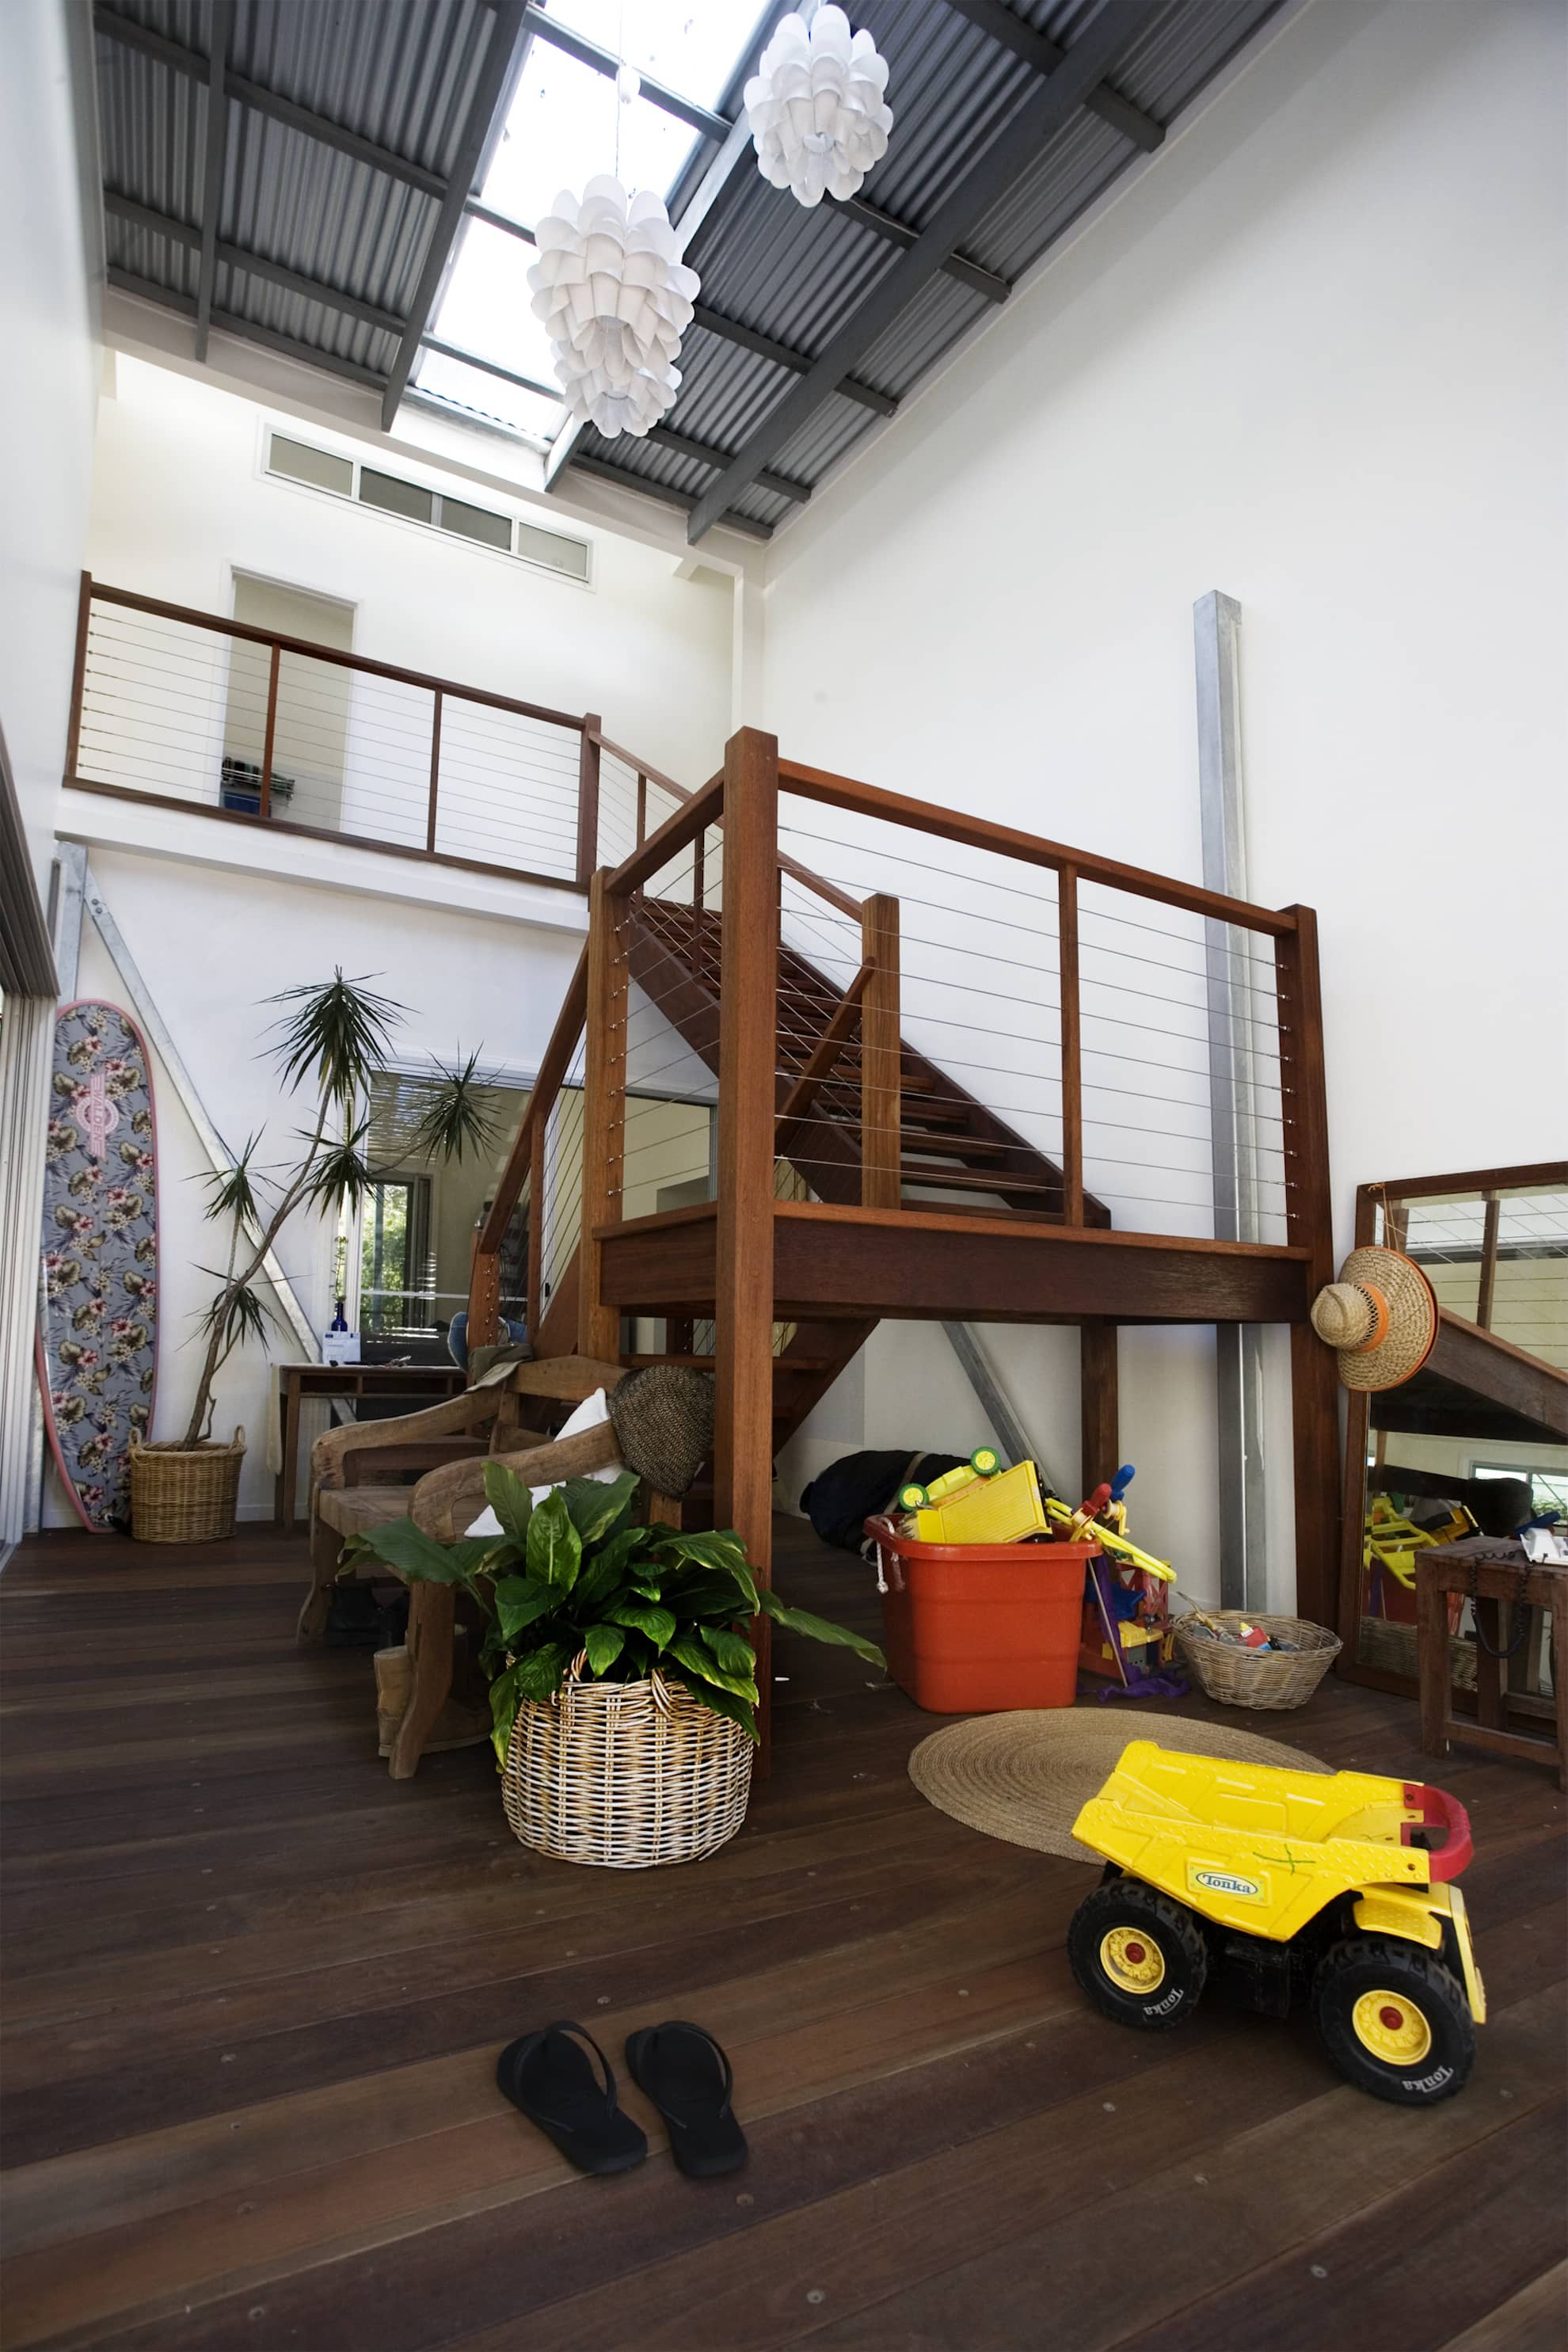 Depper Street project by mdesign, a building design practice that operates on the Sunshine Coast.